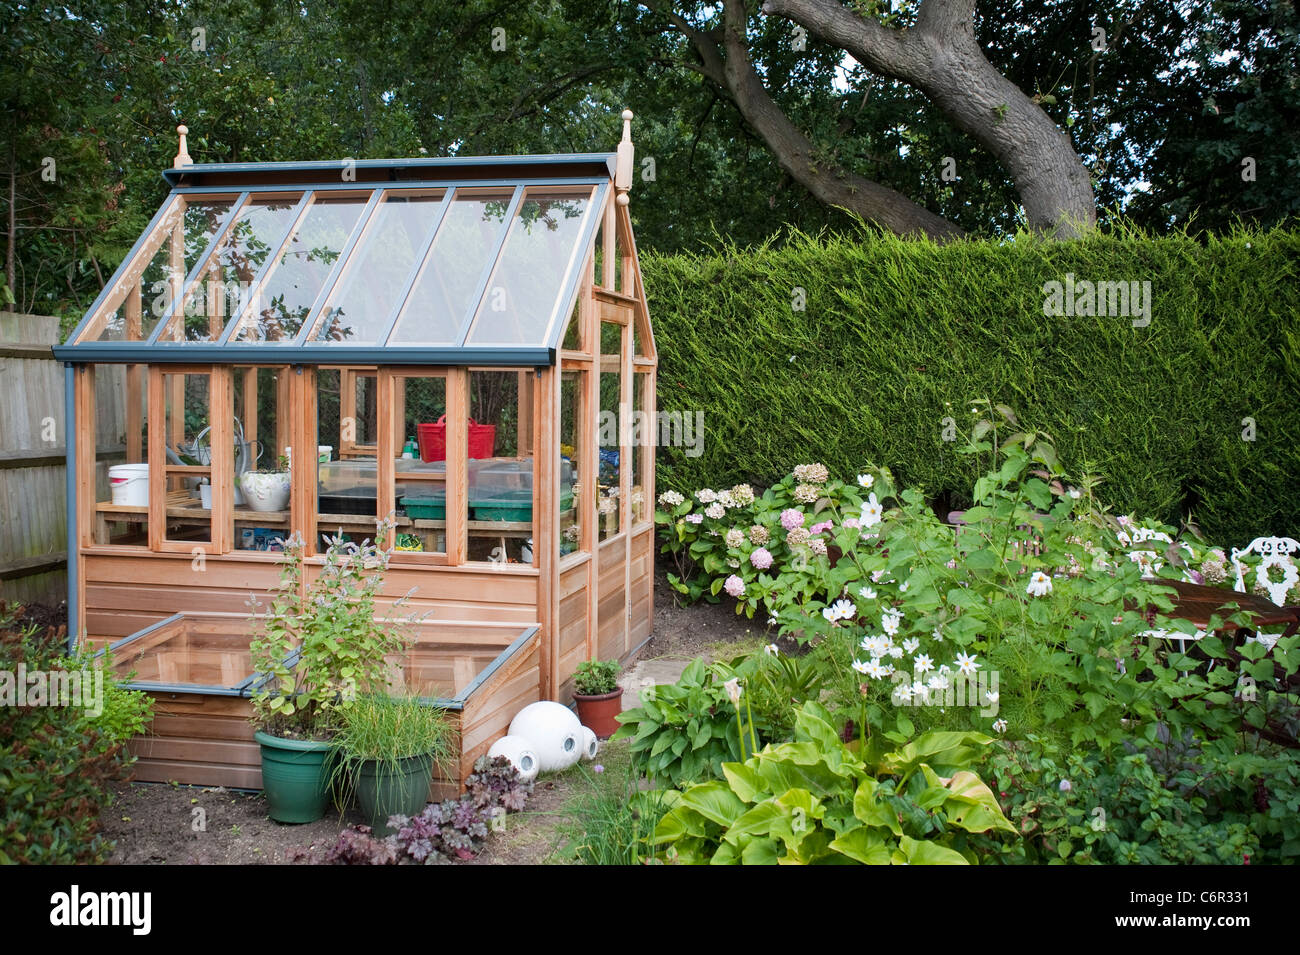 Brand new cute small greenhouse in a private Garden in London with lots of bedding plants in front and some trees. - Stock Image